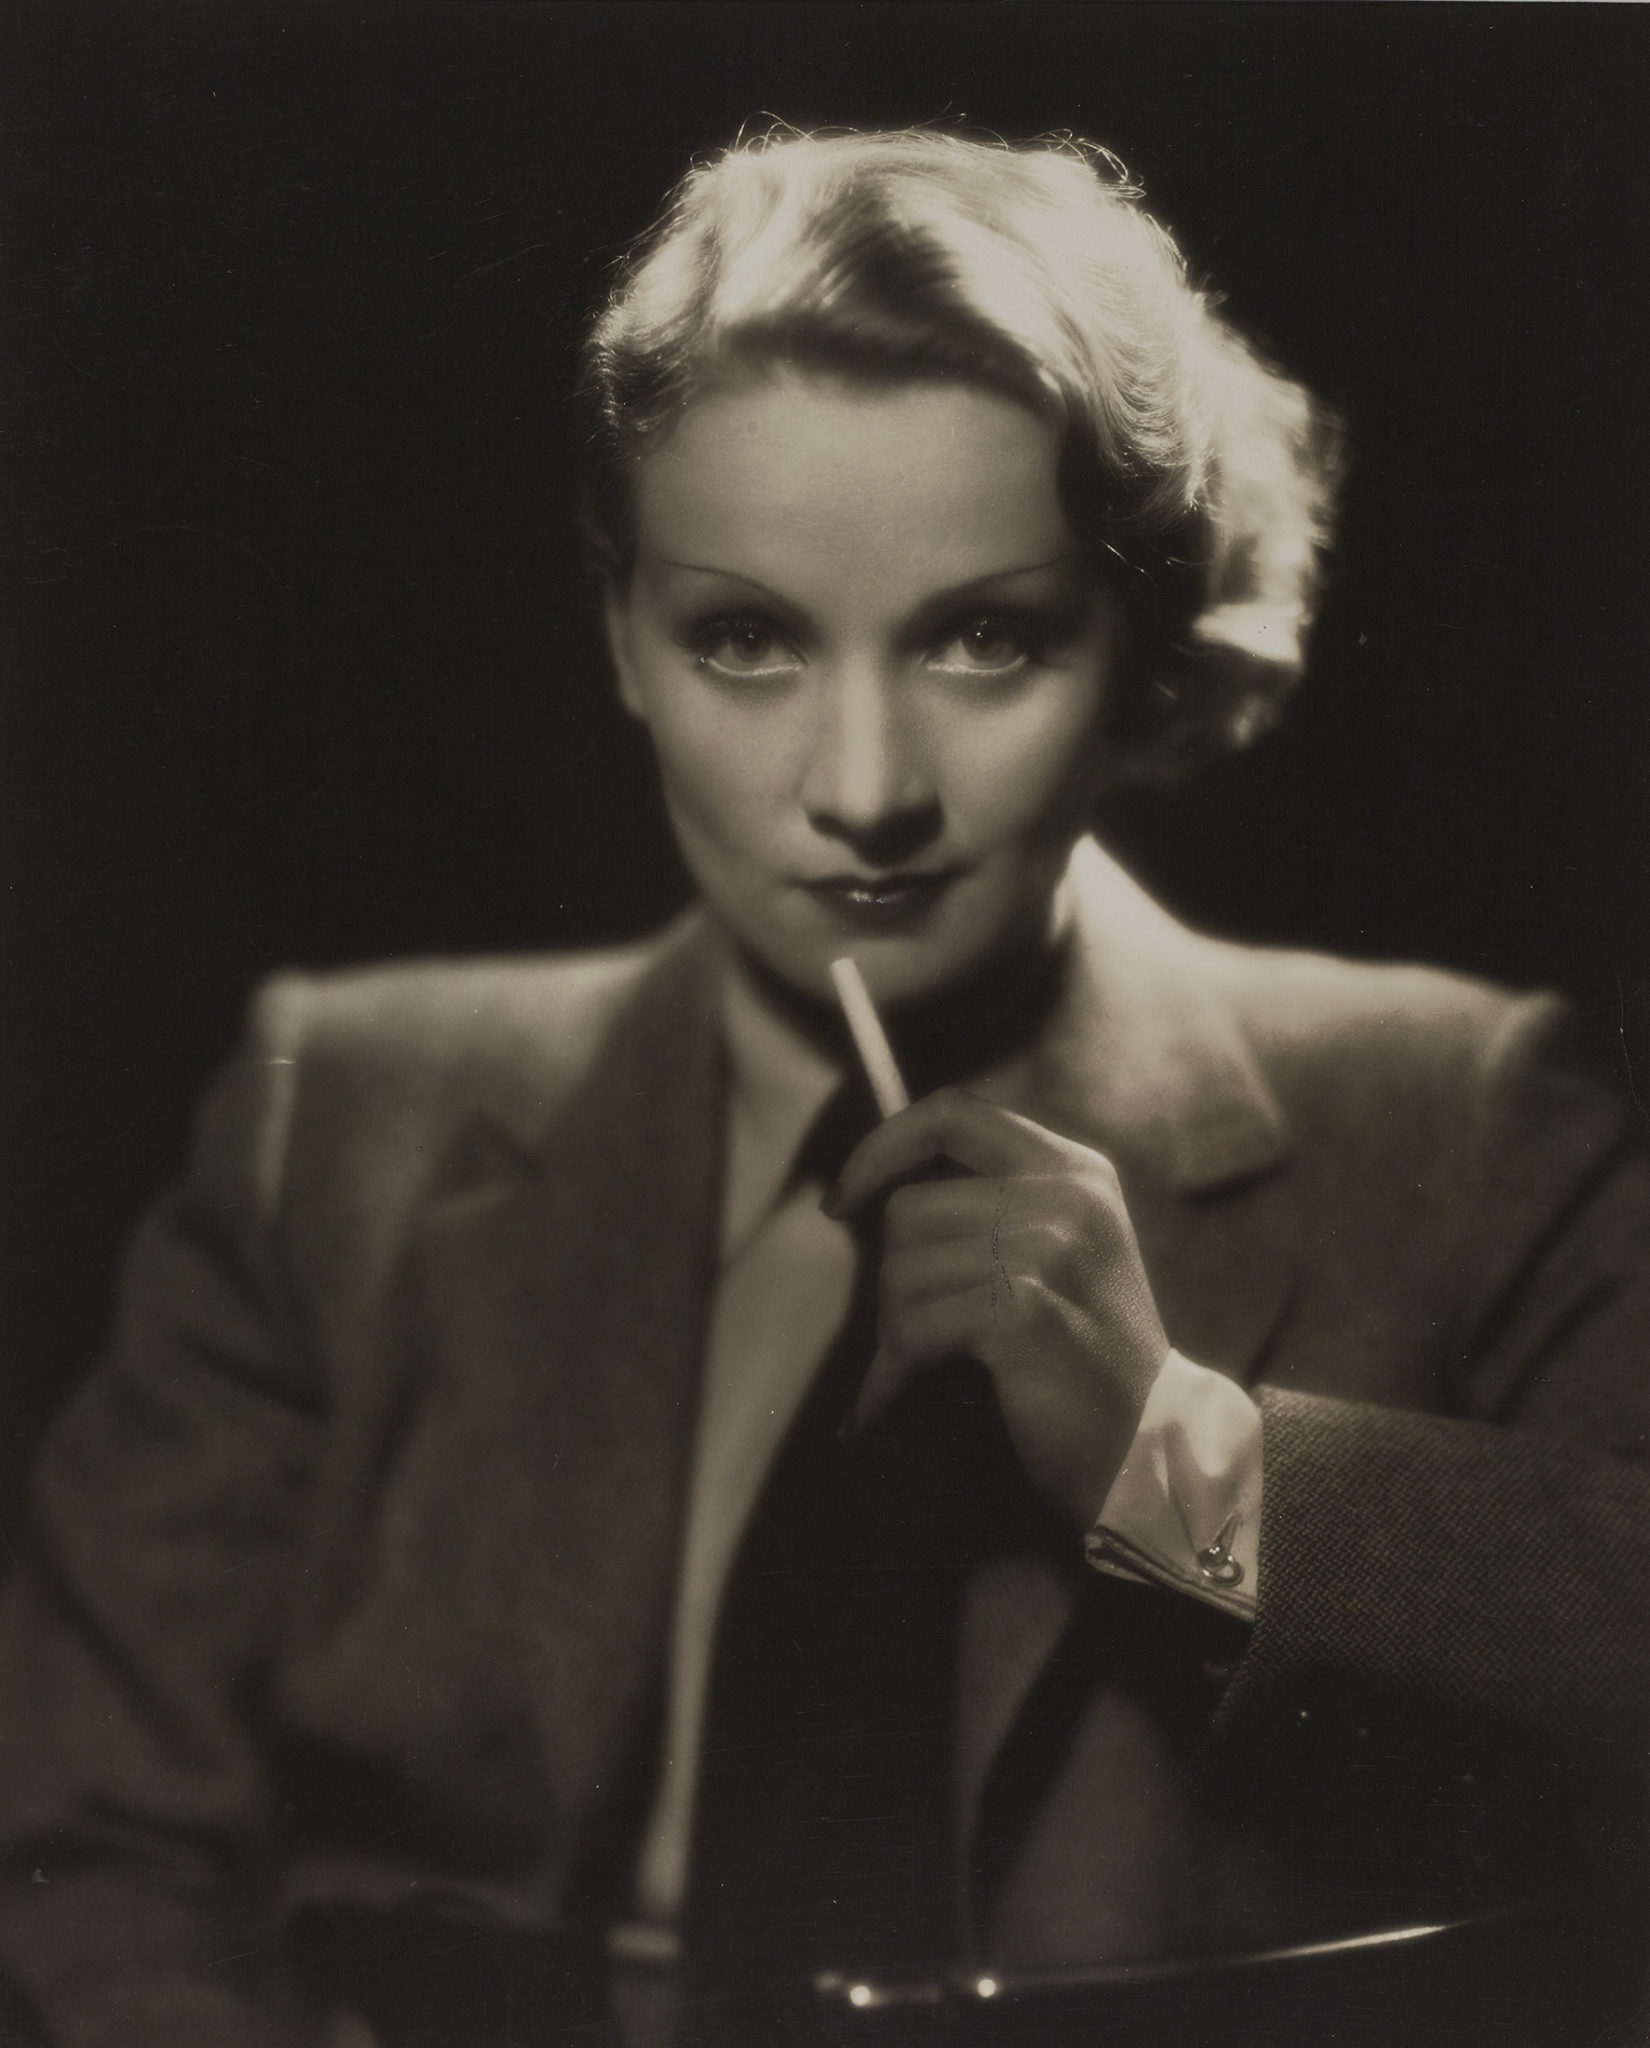 Eugene Richee Marlene Dietrich, vers 1932 © Everett Collection/Bridgeman Images